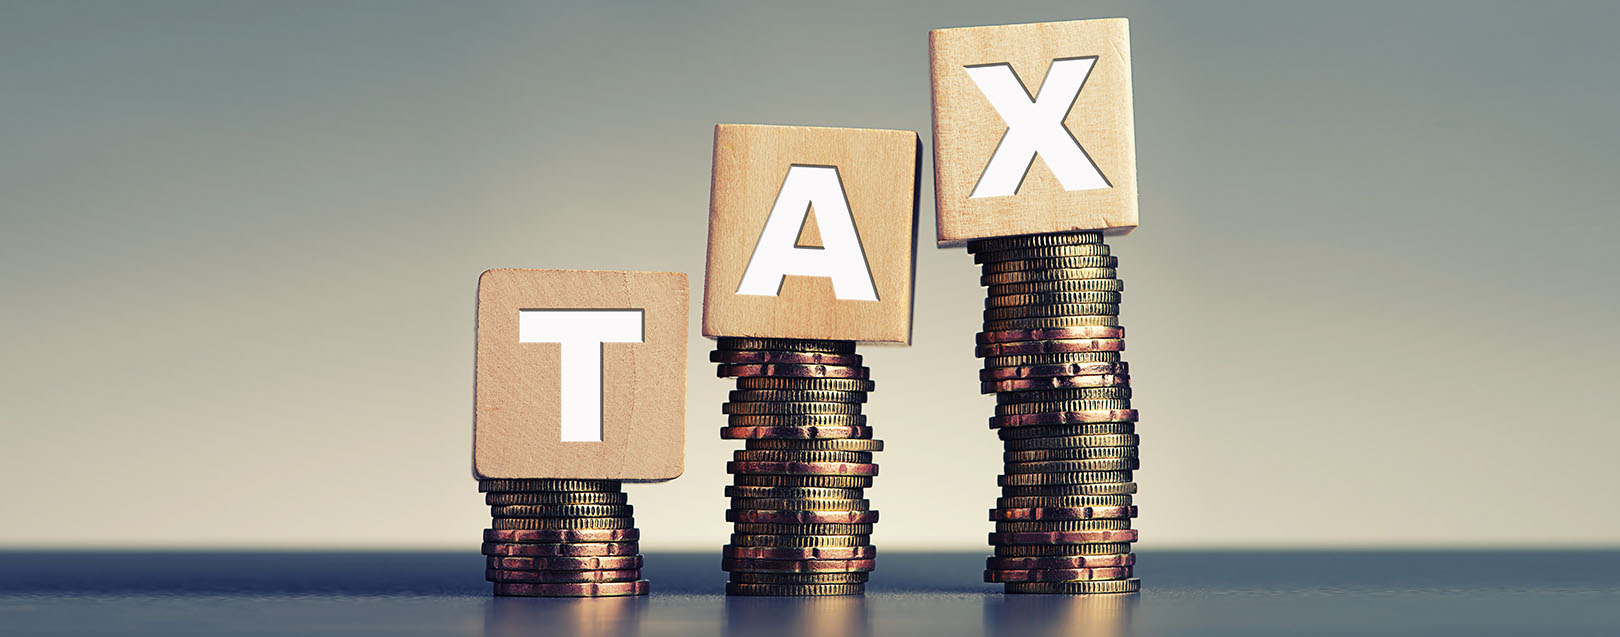 Direct tax collections show growth of 18.2% up to Dec